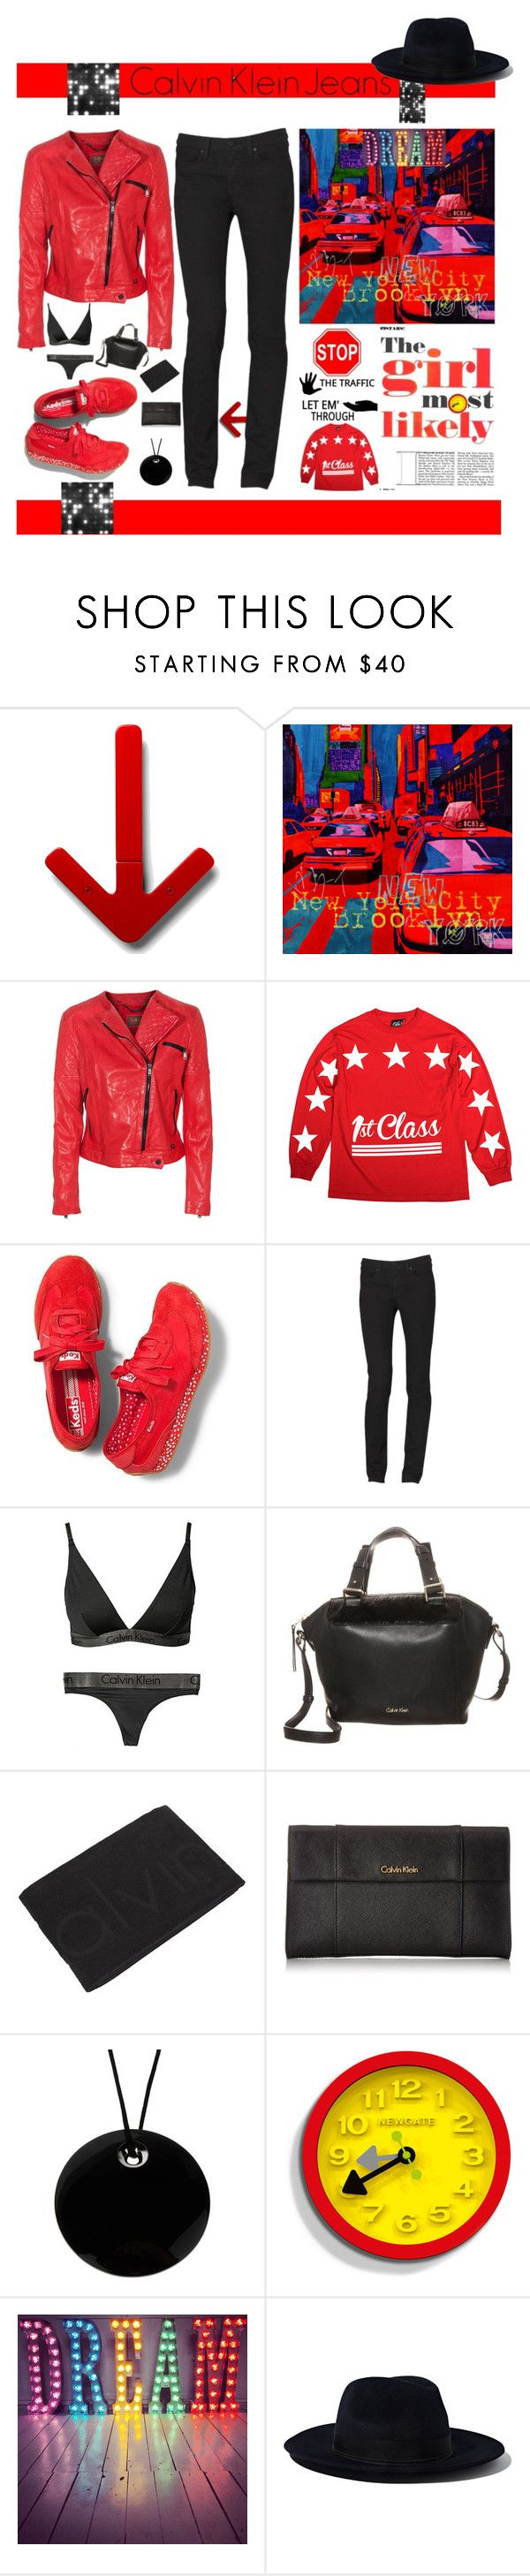 """Put it on. Take it off. Show us your Calvins.: Calvin Klein Contest Entry"" by yours-styling-best-friend ❤ liked on Polyvore featuring Design House Stockholm, The Artwork Factory, 7 For All Mankind, Keds, Calvin Klein, Calvin Klein Jeans, ck Calvin Klein, Newgate, Yang Li and mycalvins"